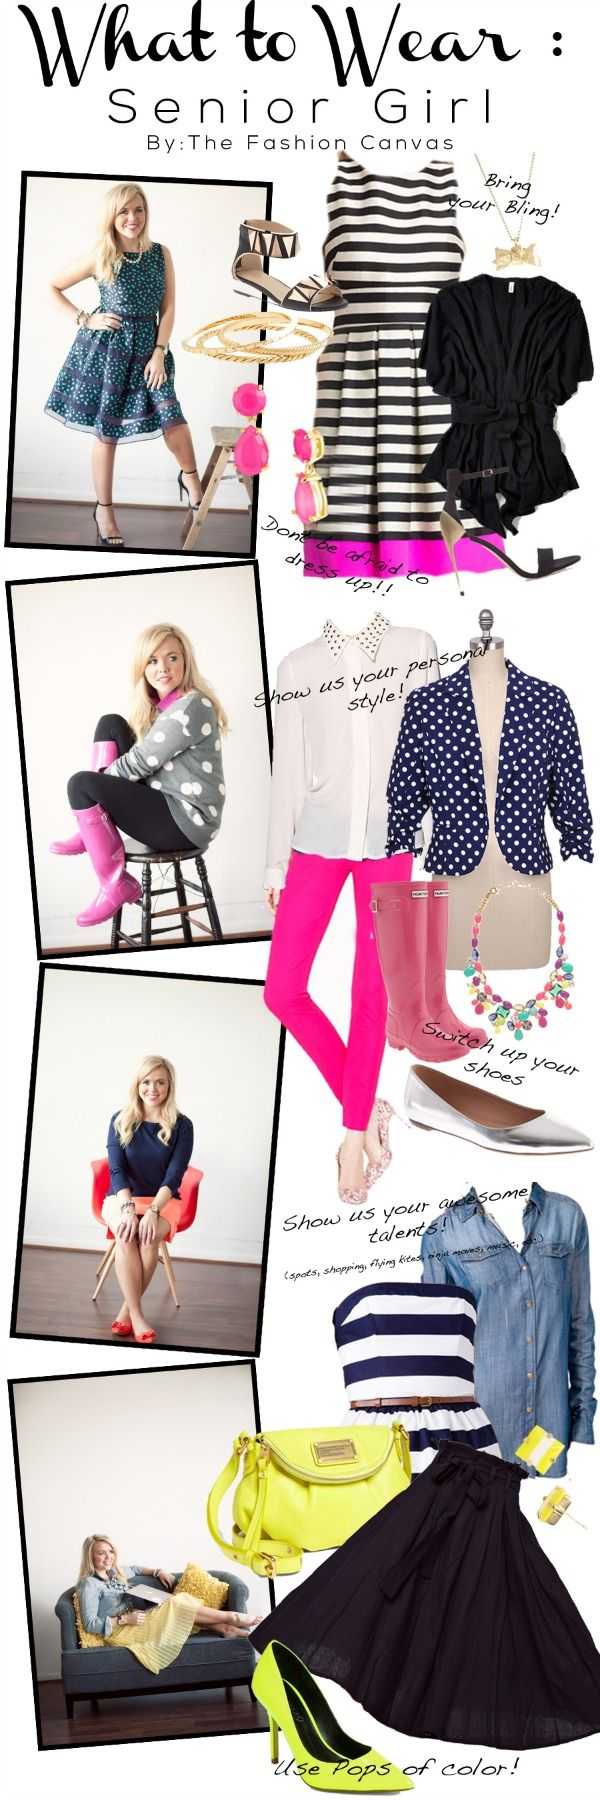 What To Wear Series - Senior Photo Shoot. Styleboard and fashion ideas for what you should wear to your senior photo shoot.